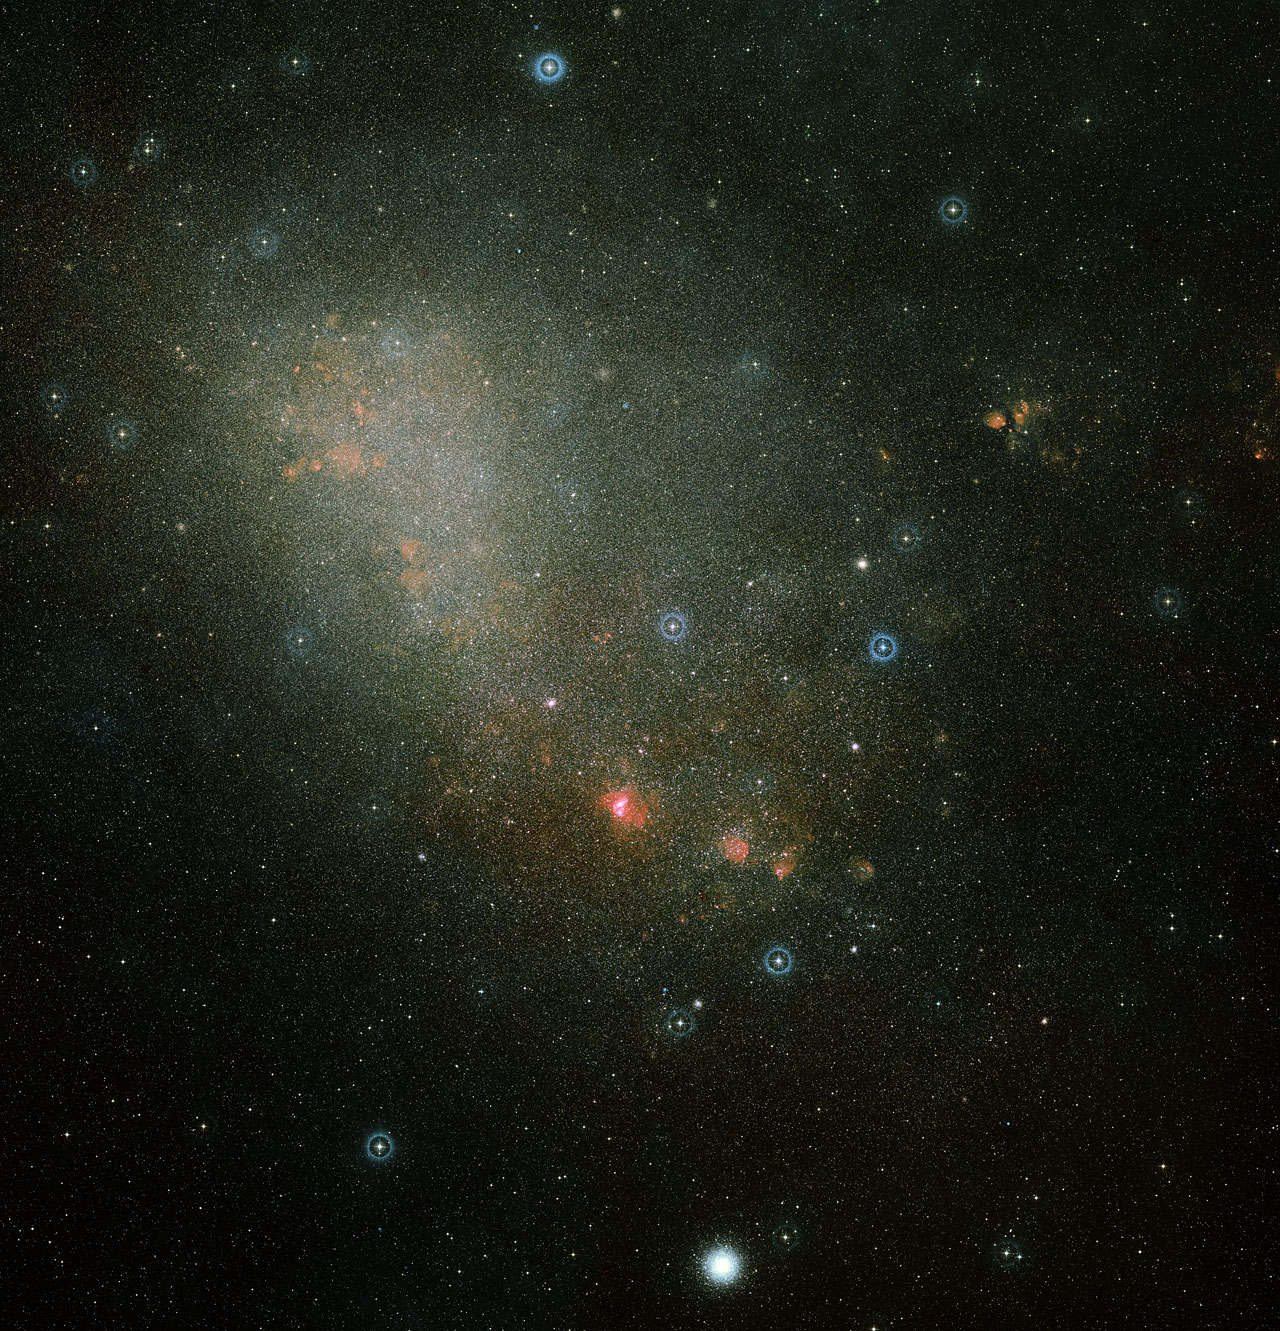 This image shows an overview of the full Small Magellanic Cloud and was composed from two images from the Digitized Sky Survey 2, which digitized photographic surveys of the night sky. Image credit: Davide De Martin (ESA/Hubble)